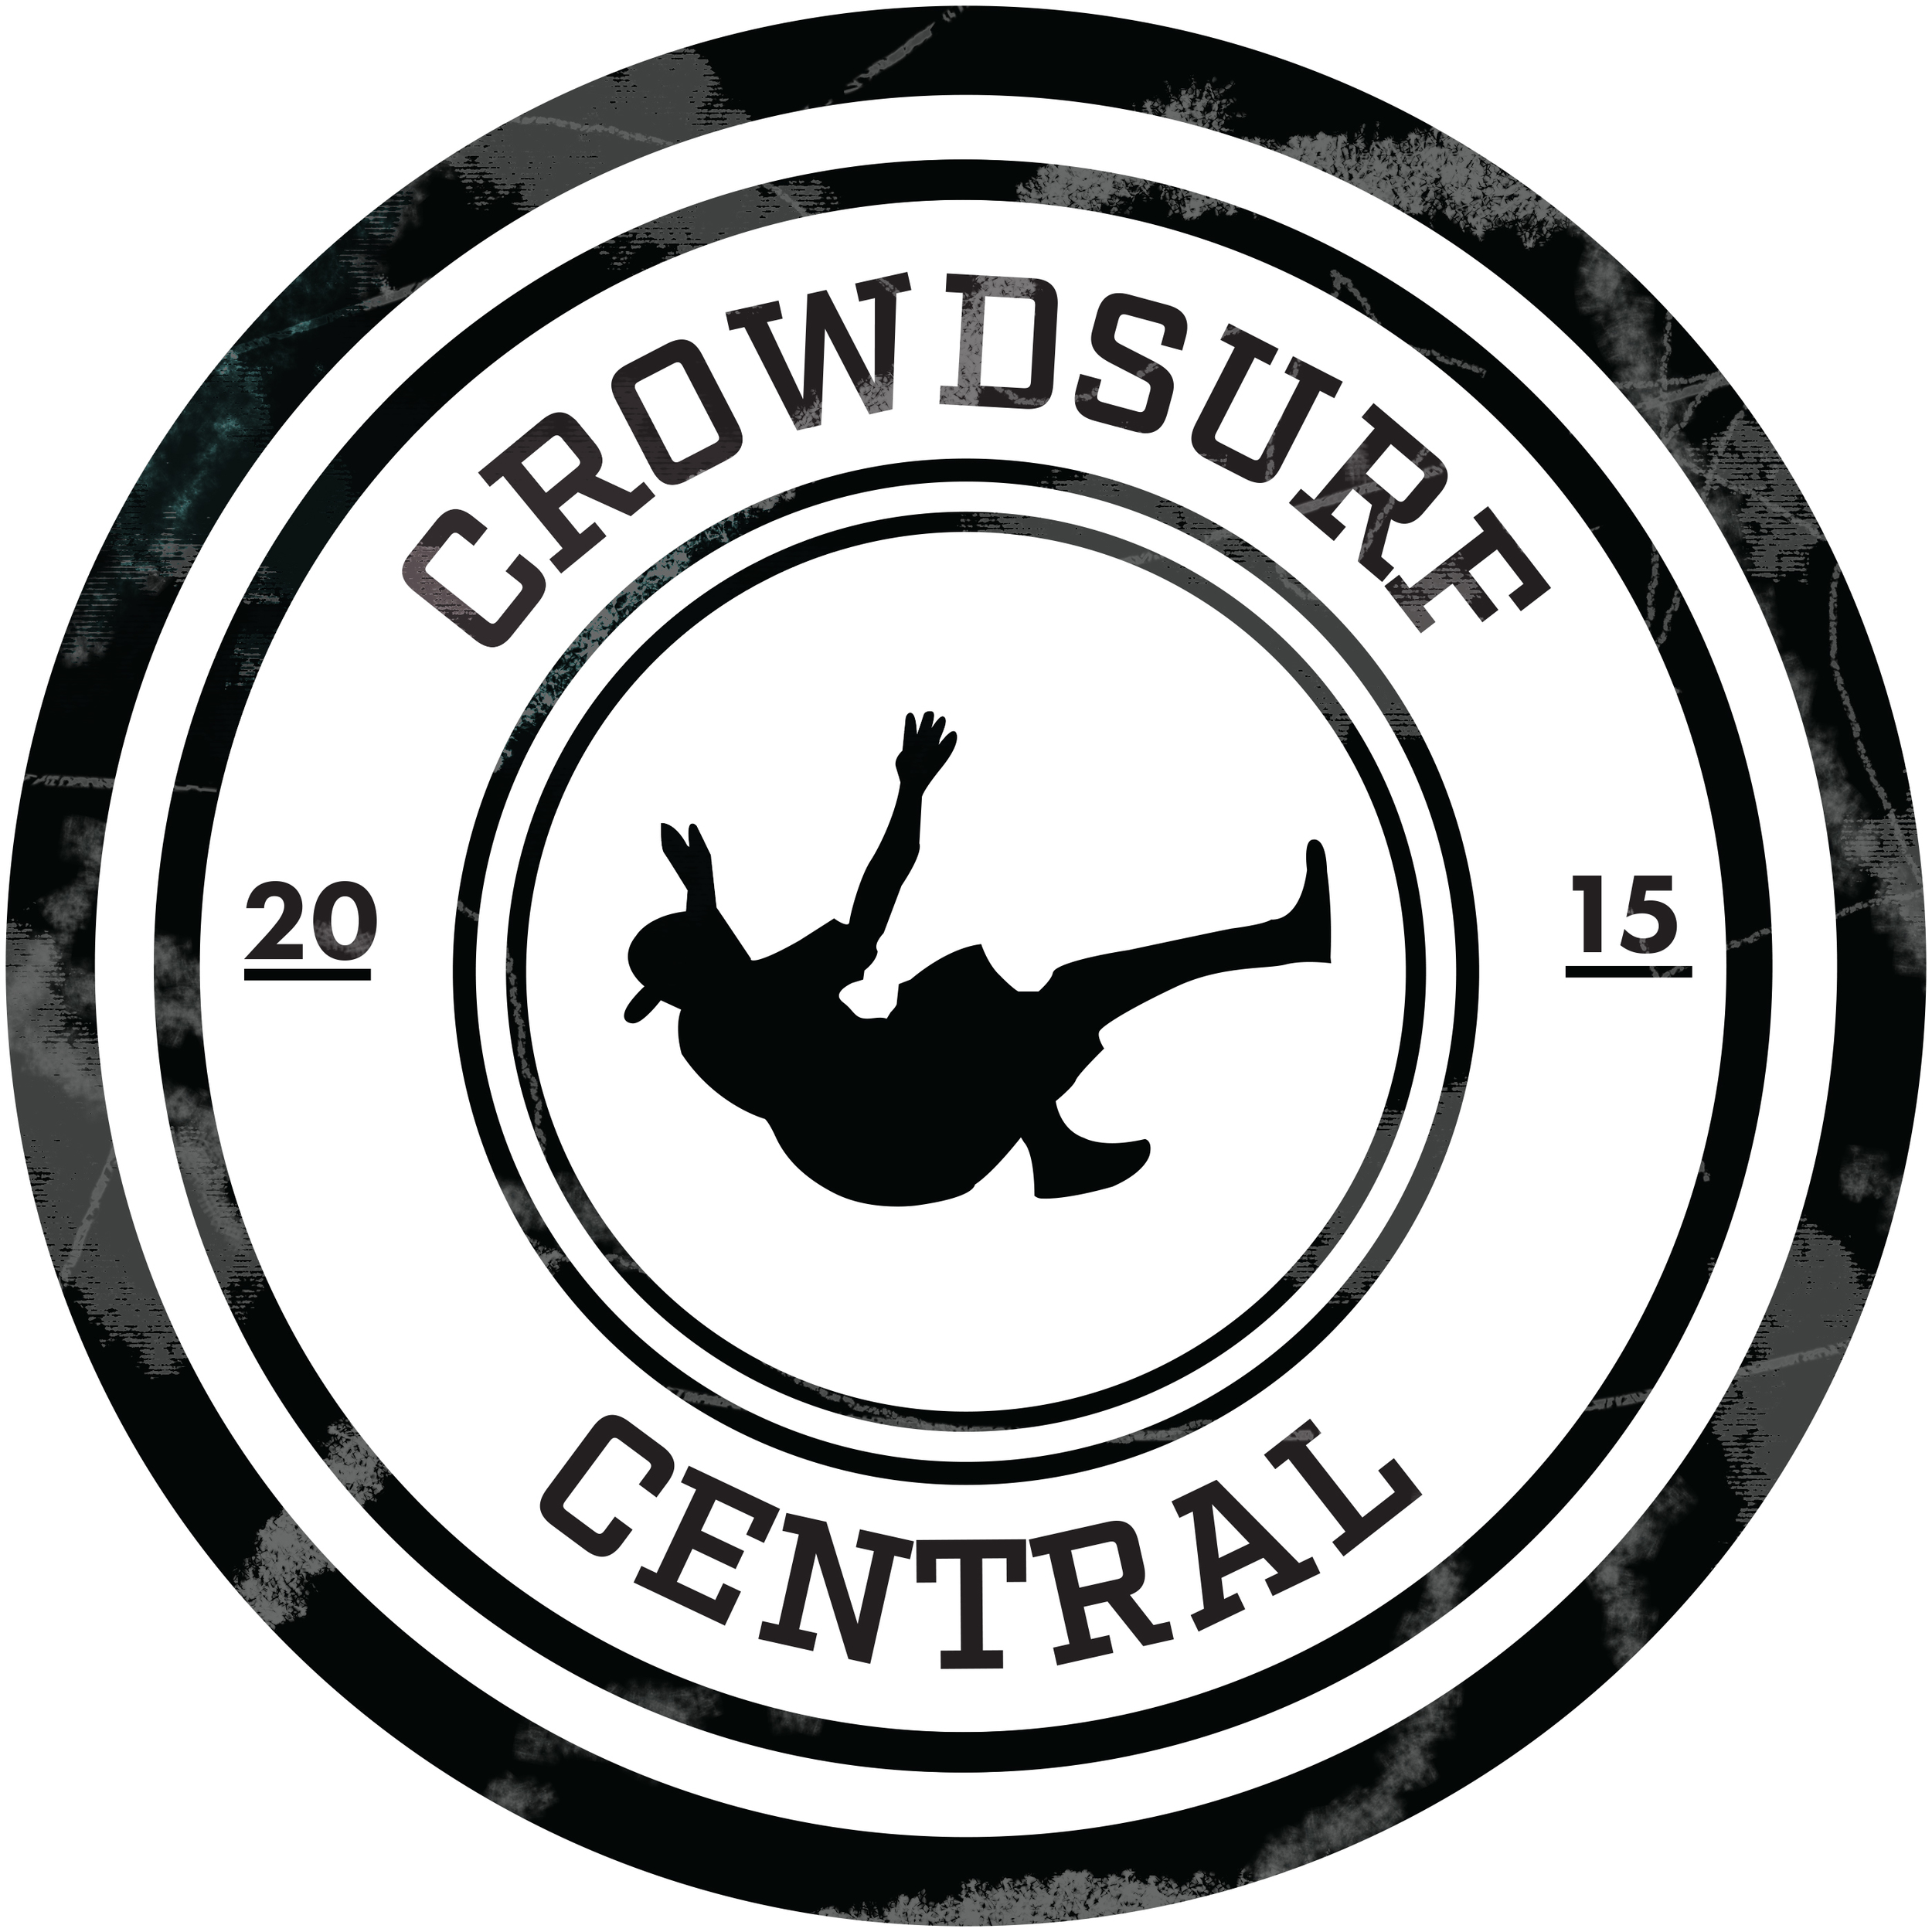 Crowdsurf Central Logo